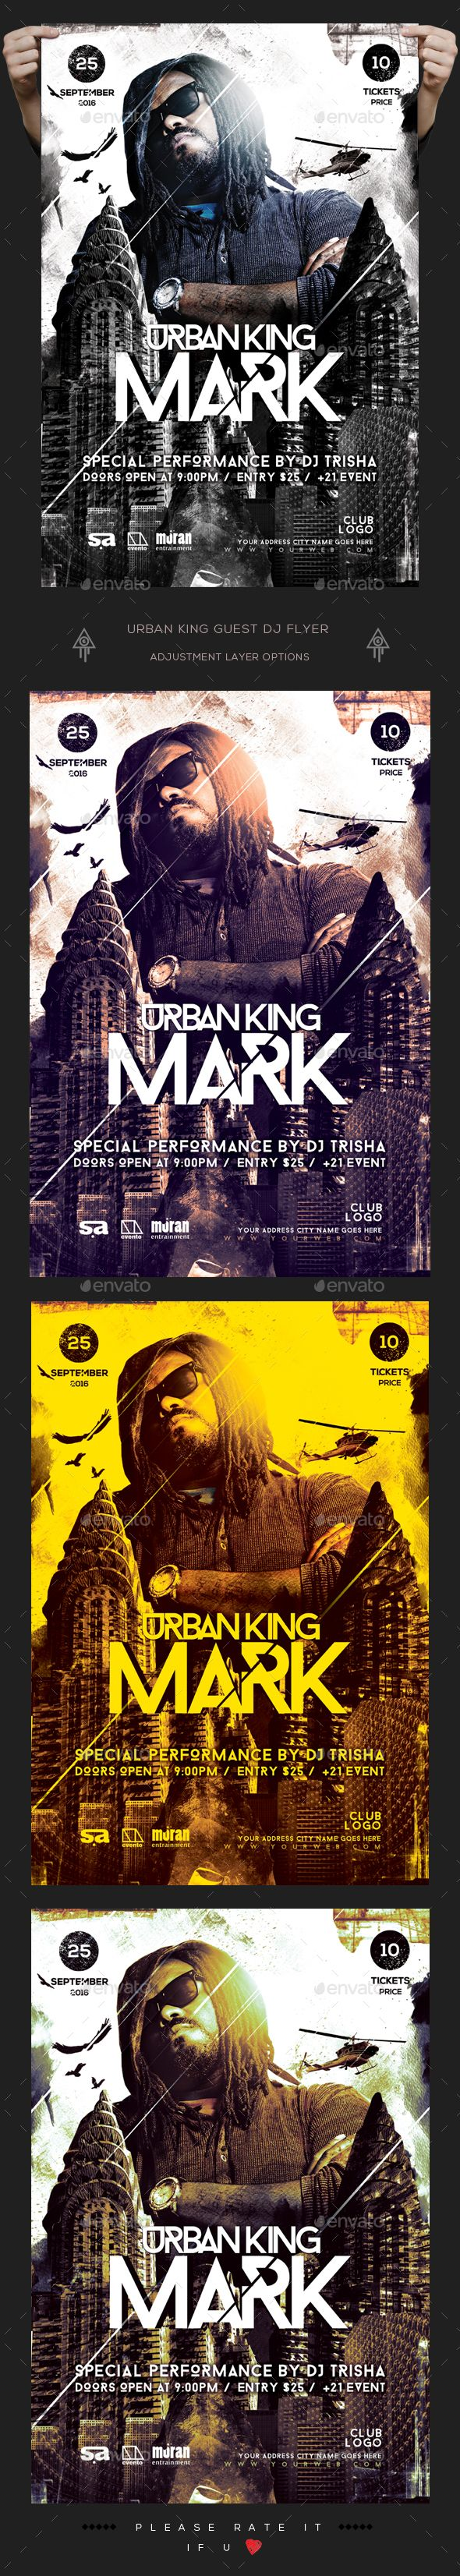 Urban King Guest Dj Flyer — Photoshop PSD #festival #special guest dj • Download ➝ https://graphicriver.net/item/urban-king-guest-dj-flyer/19191907?ref=pxcr